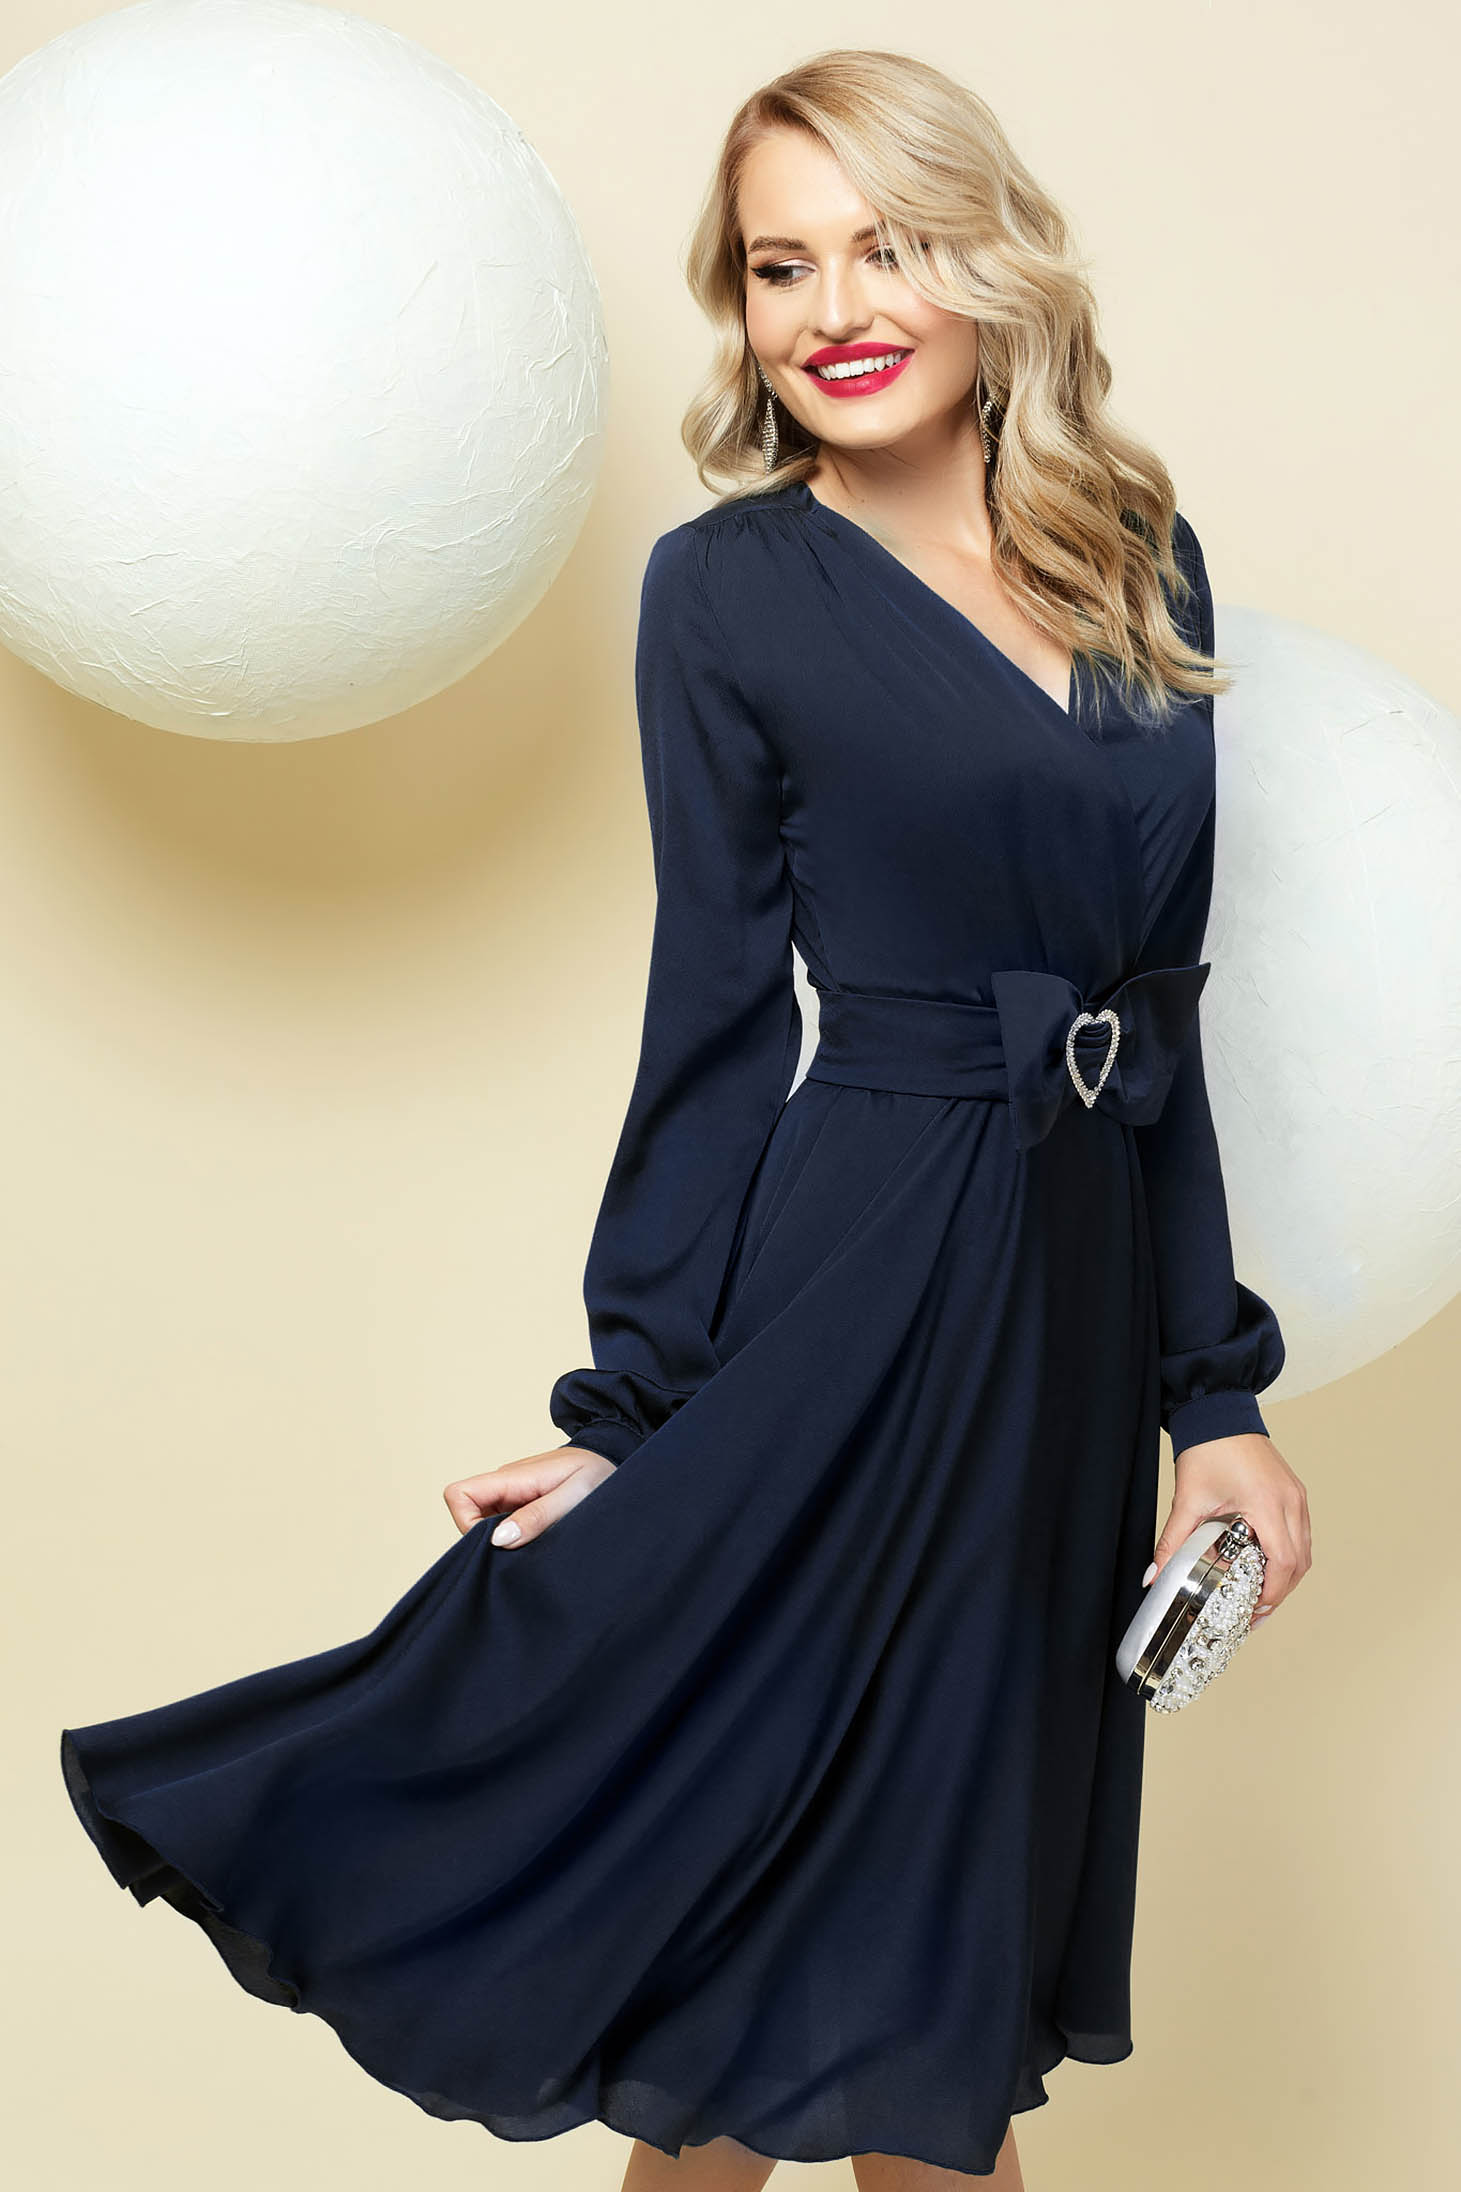 Cloche darkblue dress wrap over front with v-neckline accessorized with belt